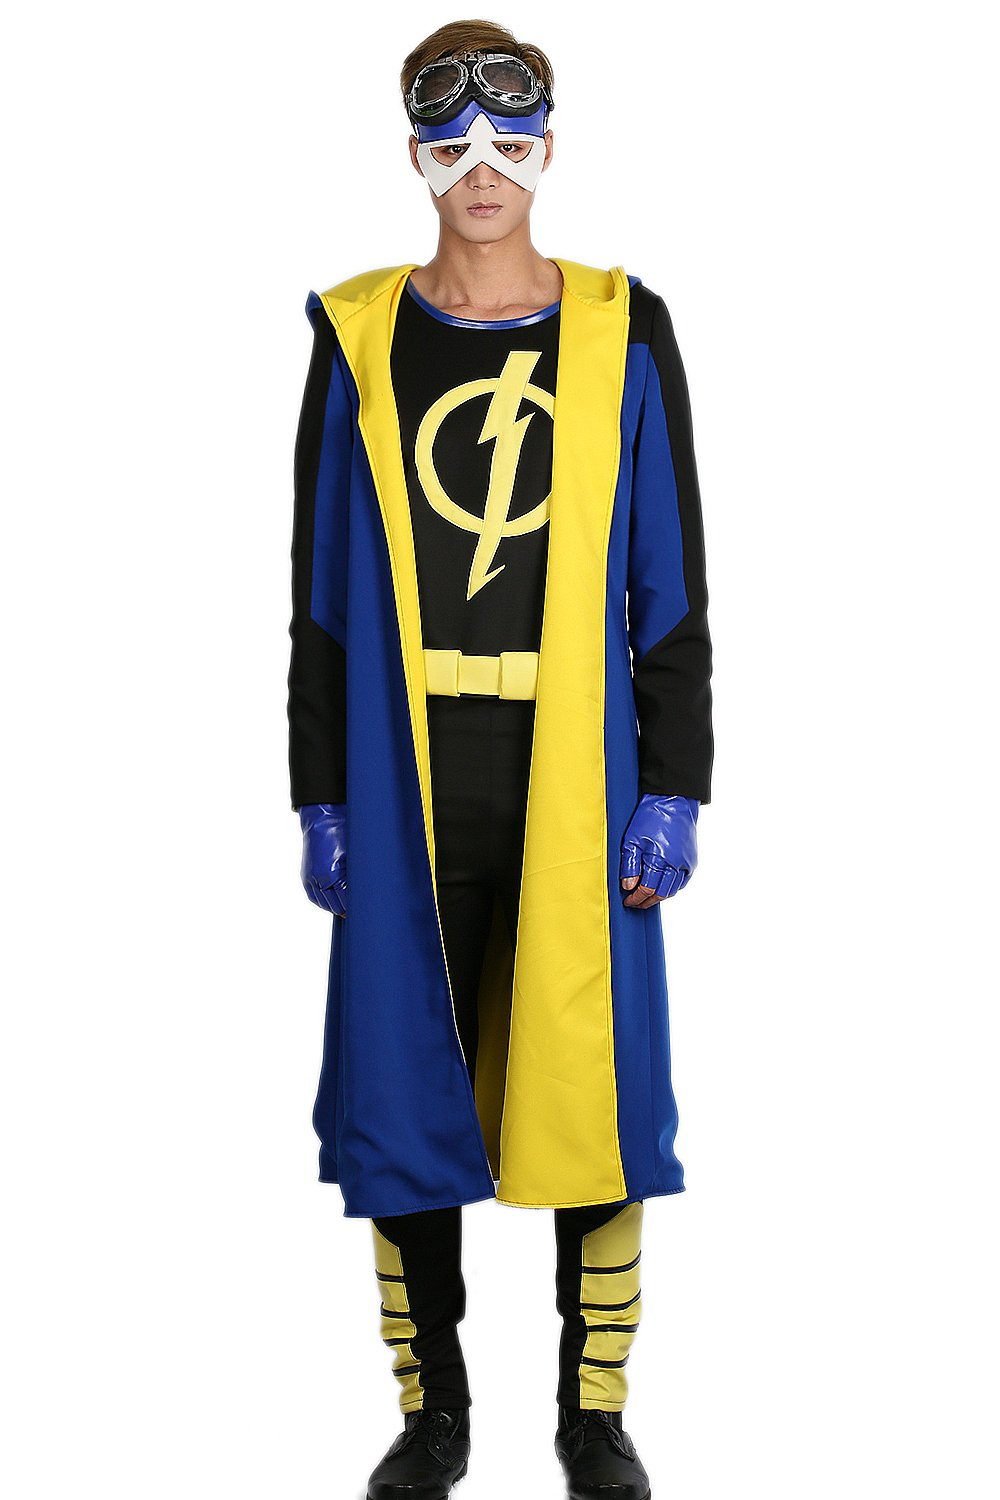 Static Shock Costume Deluxe Full Set Coat Shirt Belt Cosplay Outfits M